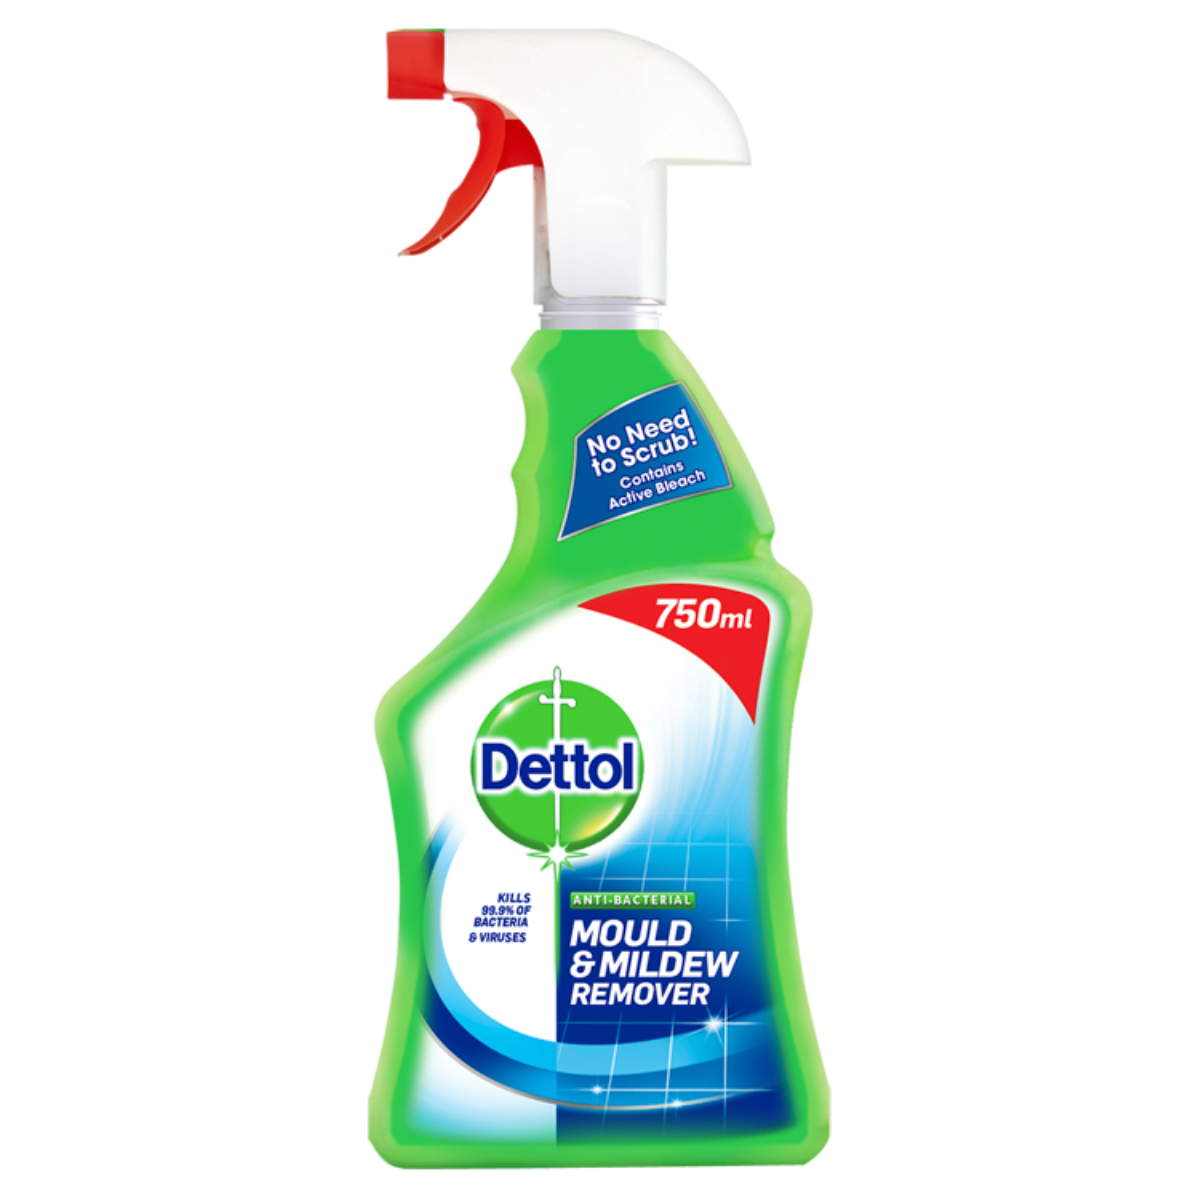 Mould Remover Bathroom 28 Images Dettol Healthy Clean Bathroom Mould Remover Product Review